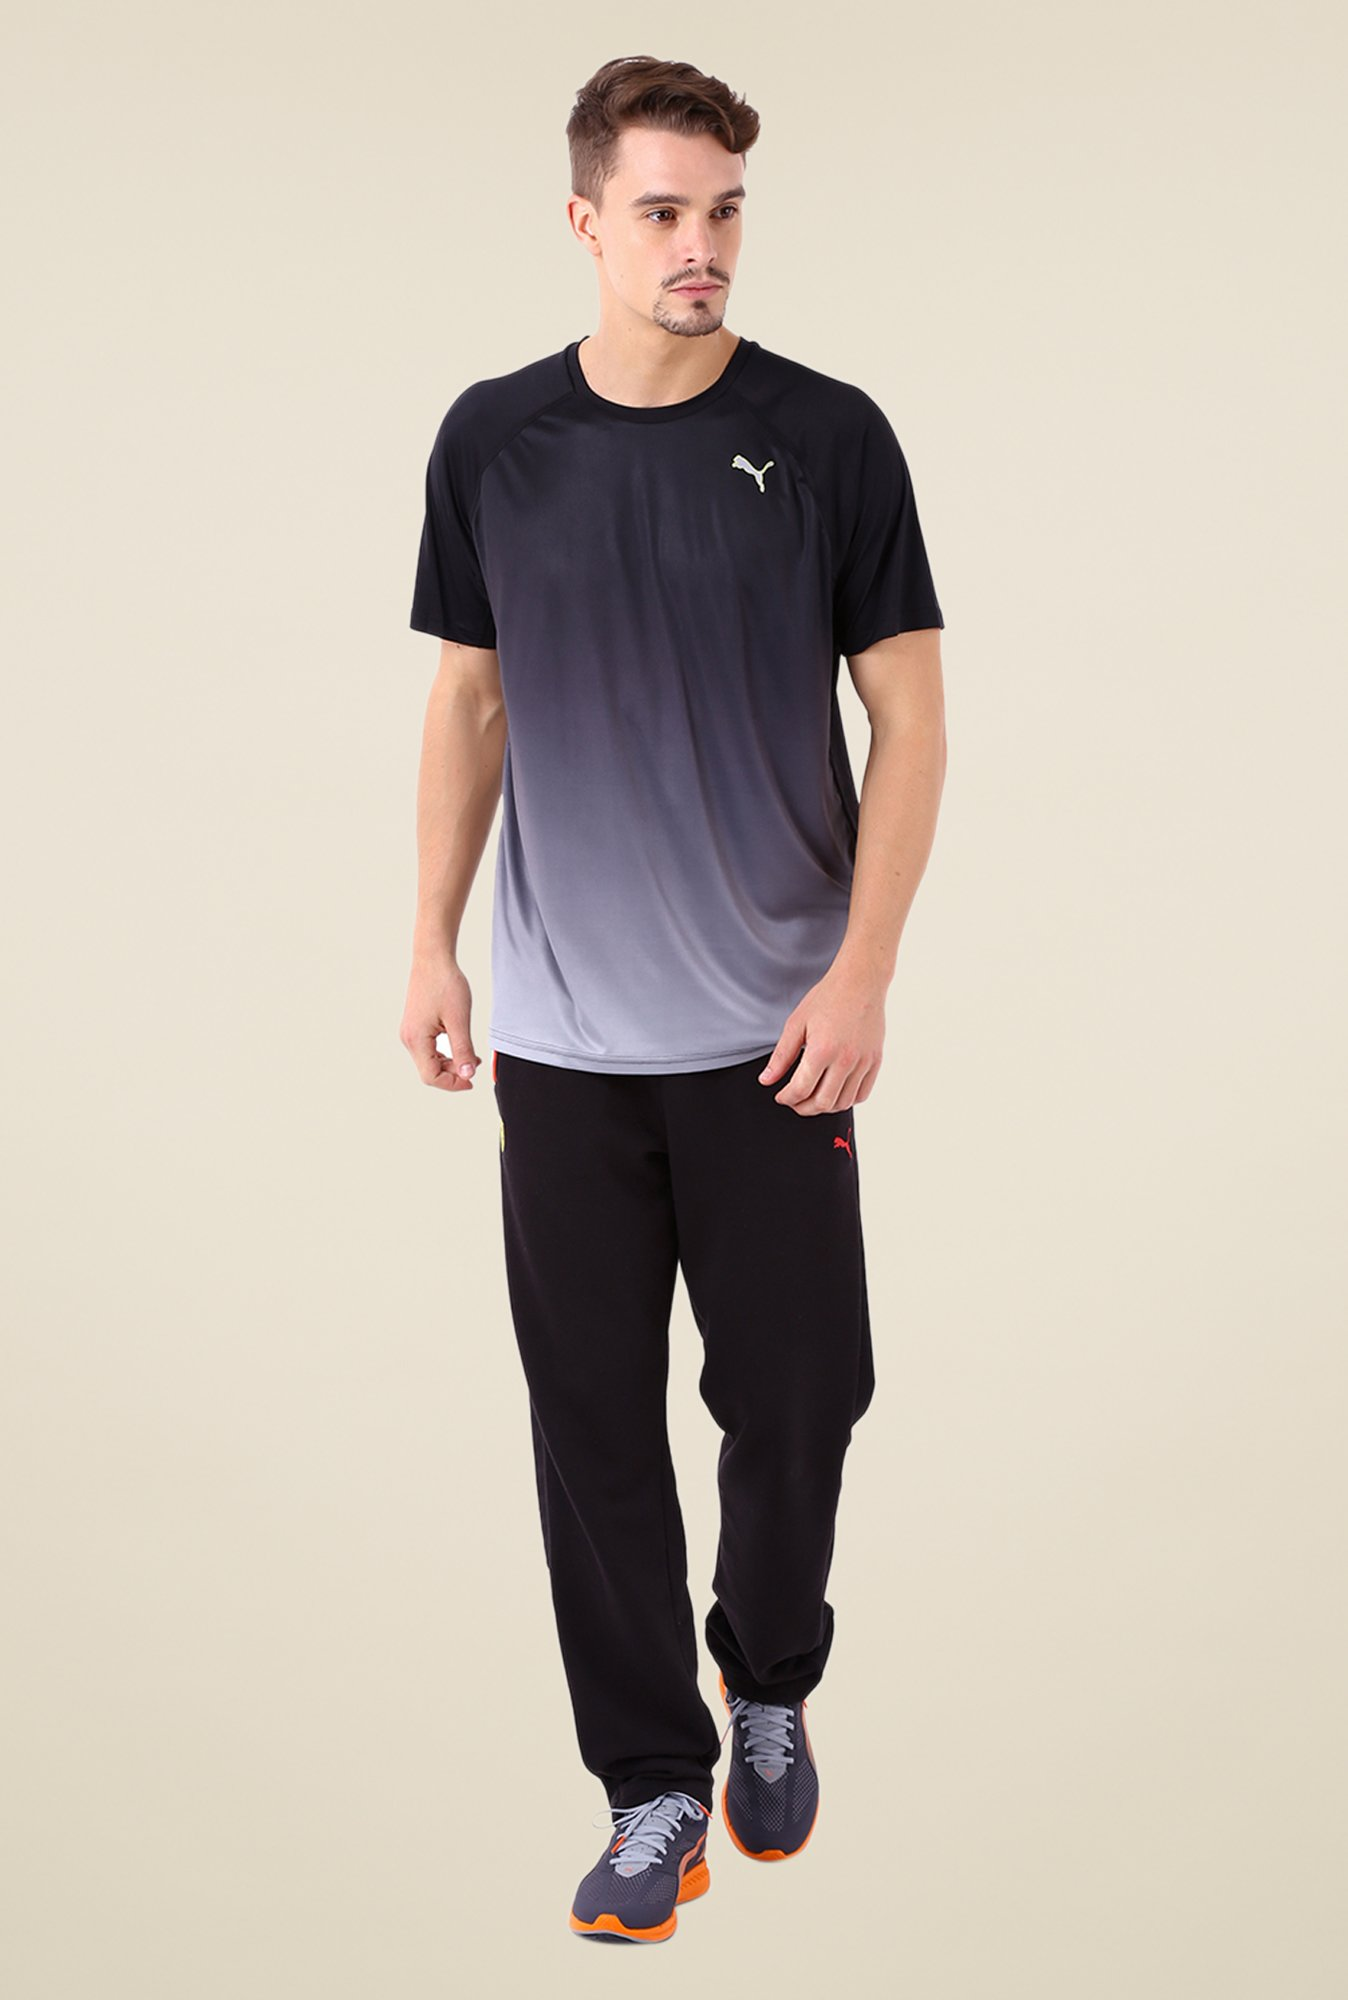 Puma Black Ombre T Shirt